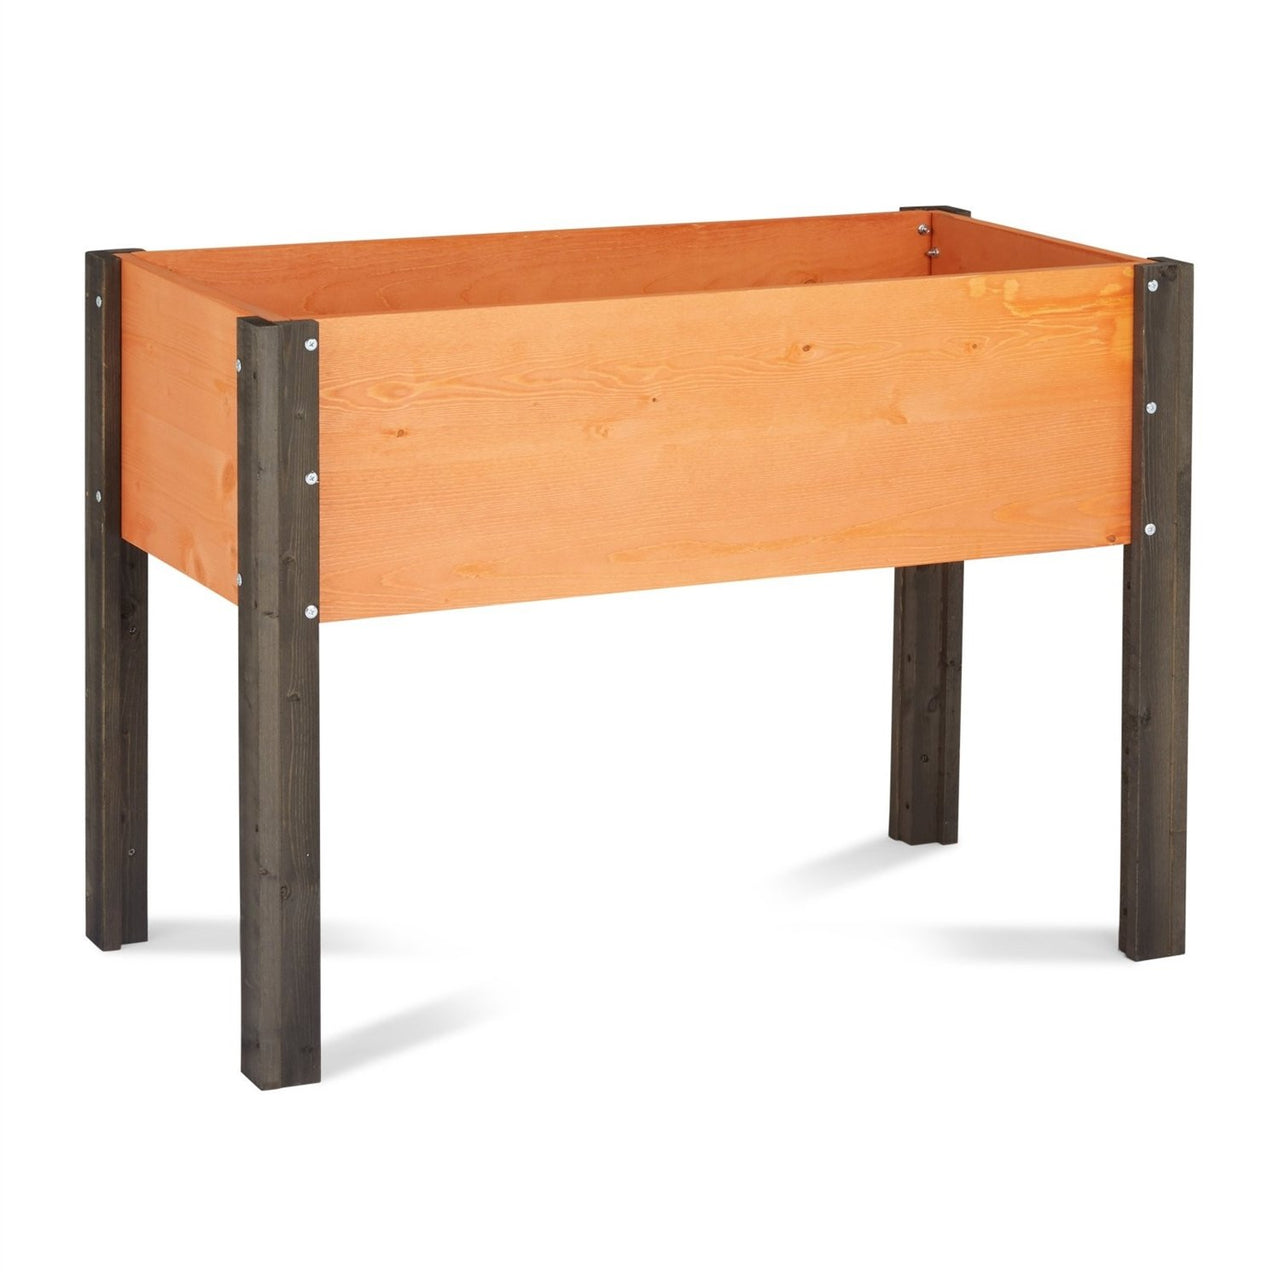 Elevated Outdoor Raised Garden Bed Planter Box - 40 x 20 x 29 inch High